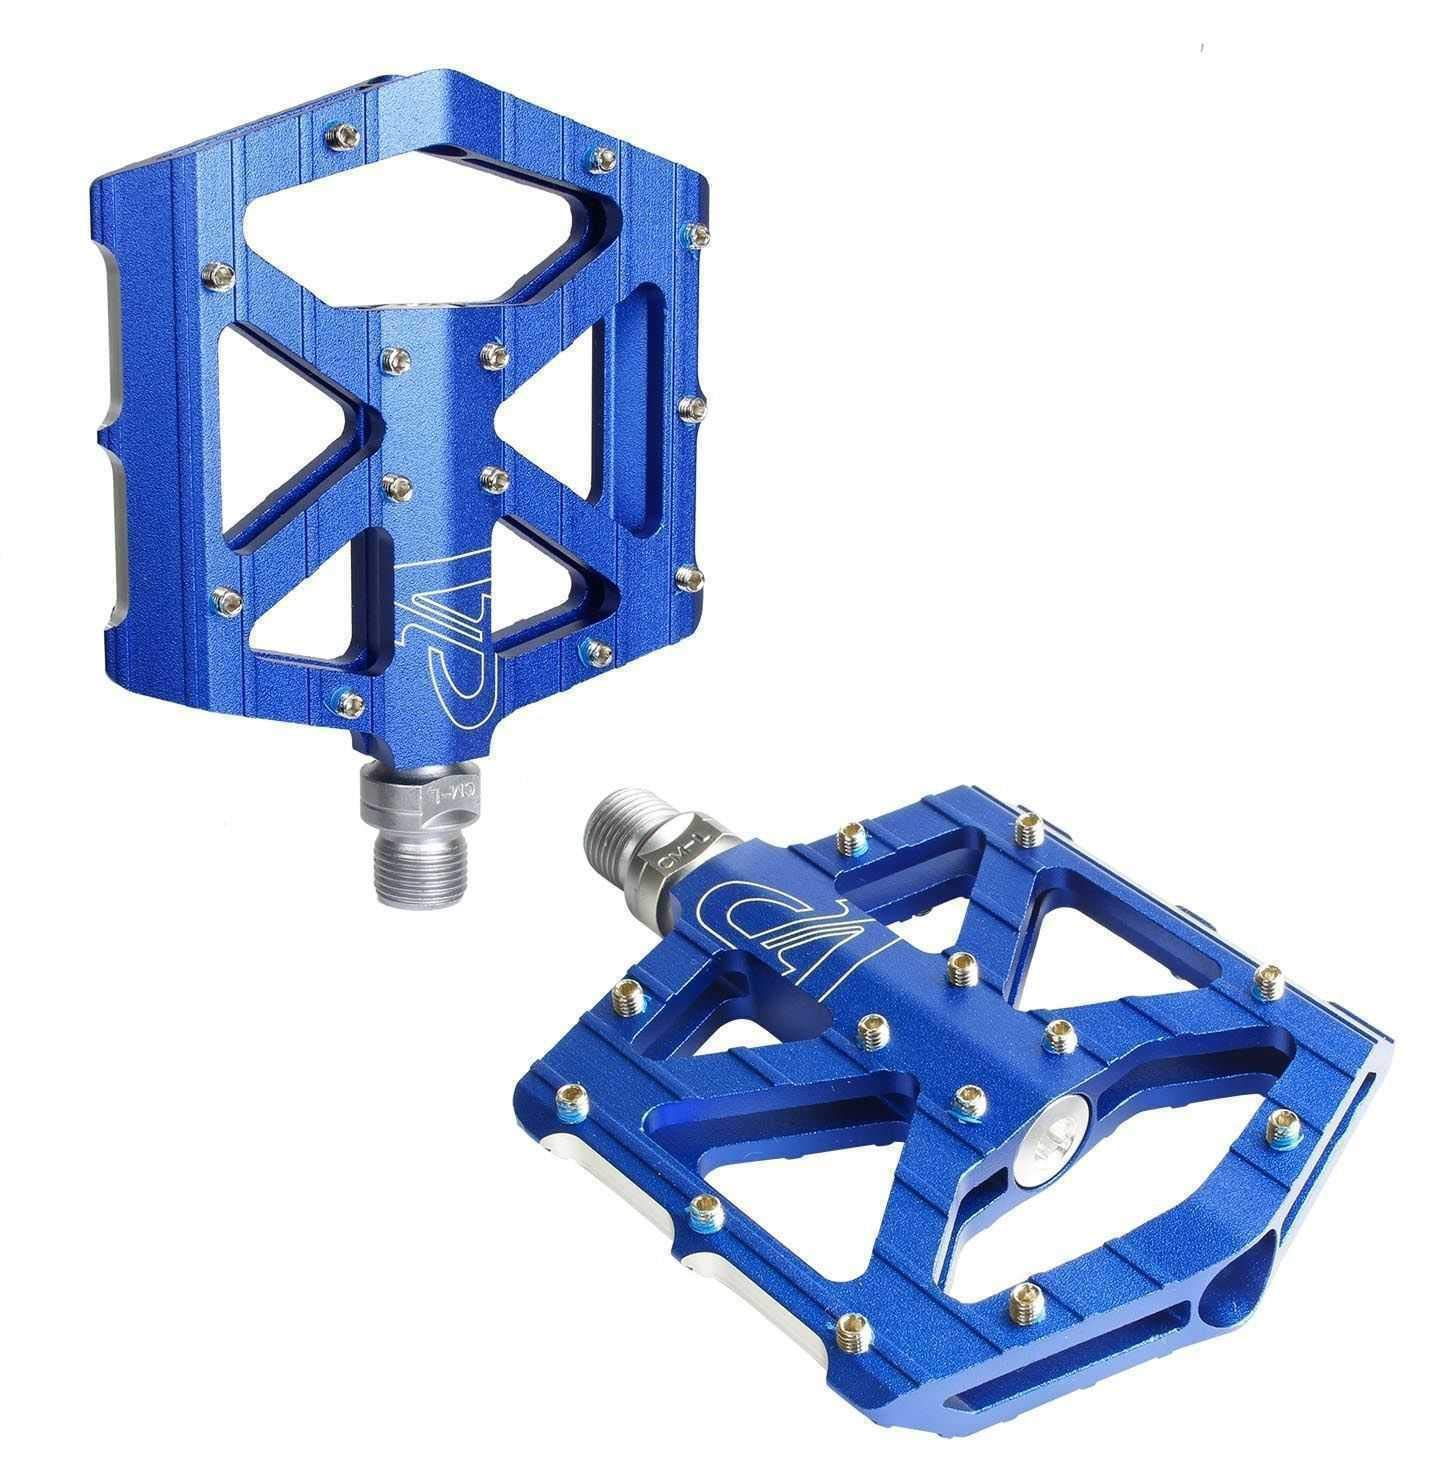 VP Components Bike Pedals, Blue by VP Components